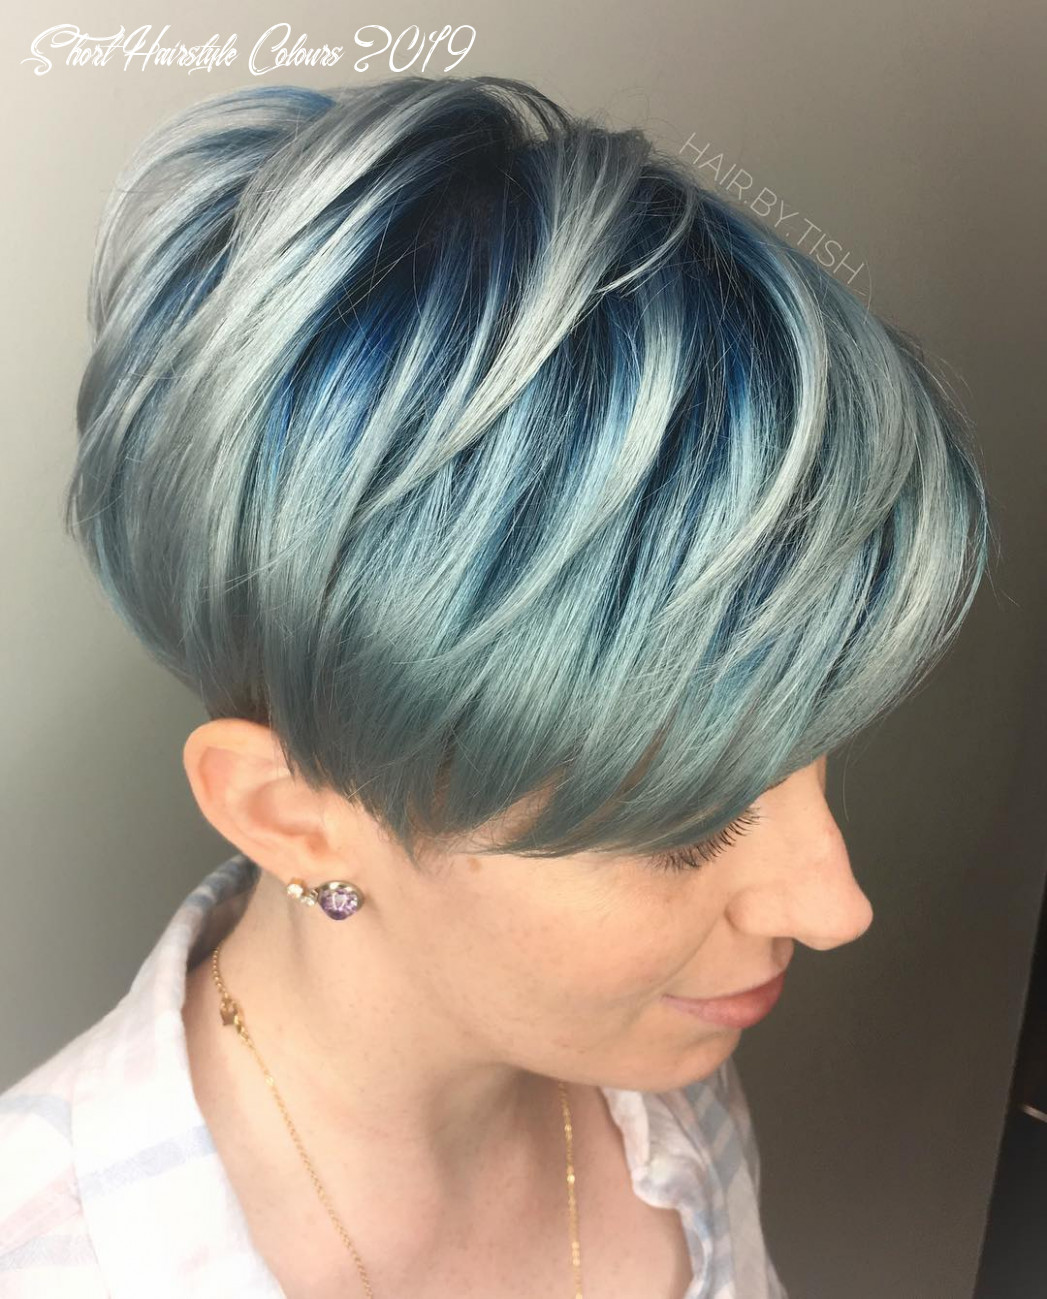 Short hair color ideas for female, chic short haircut for 10